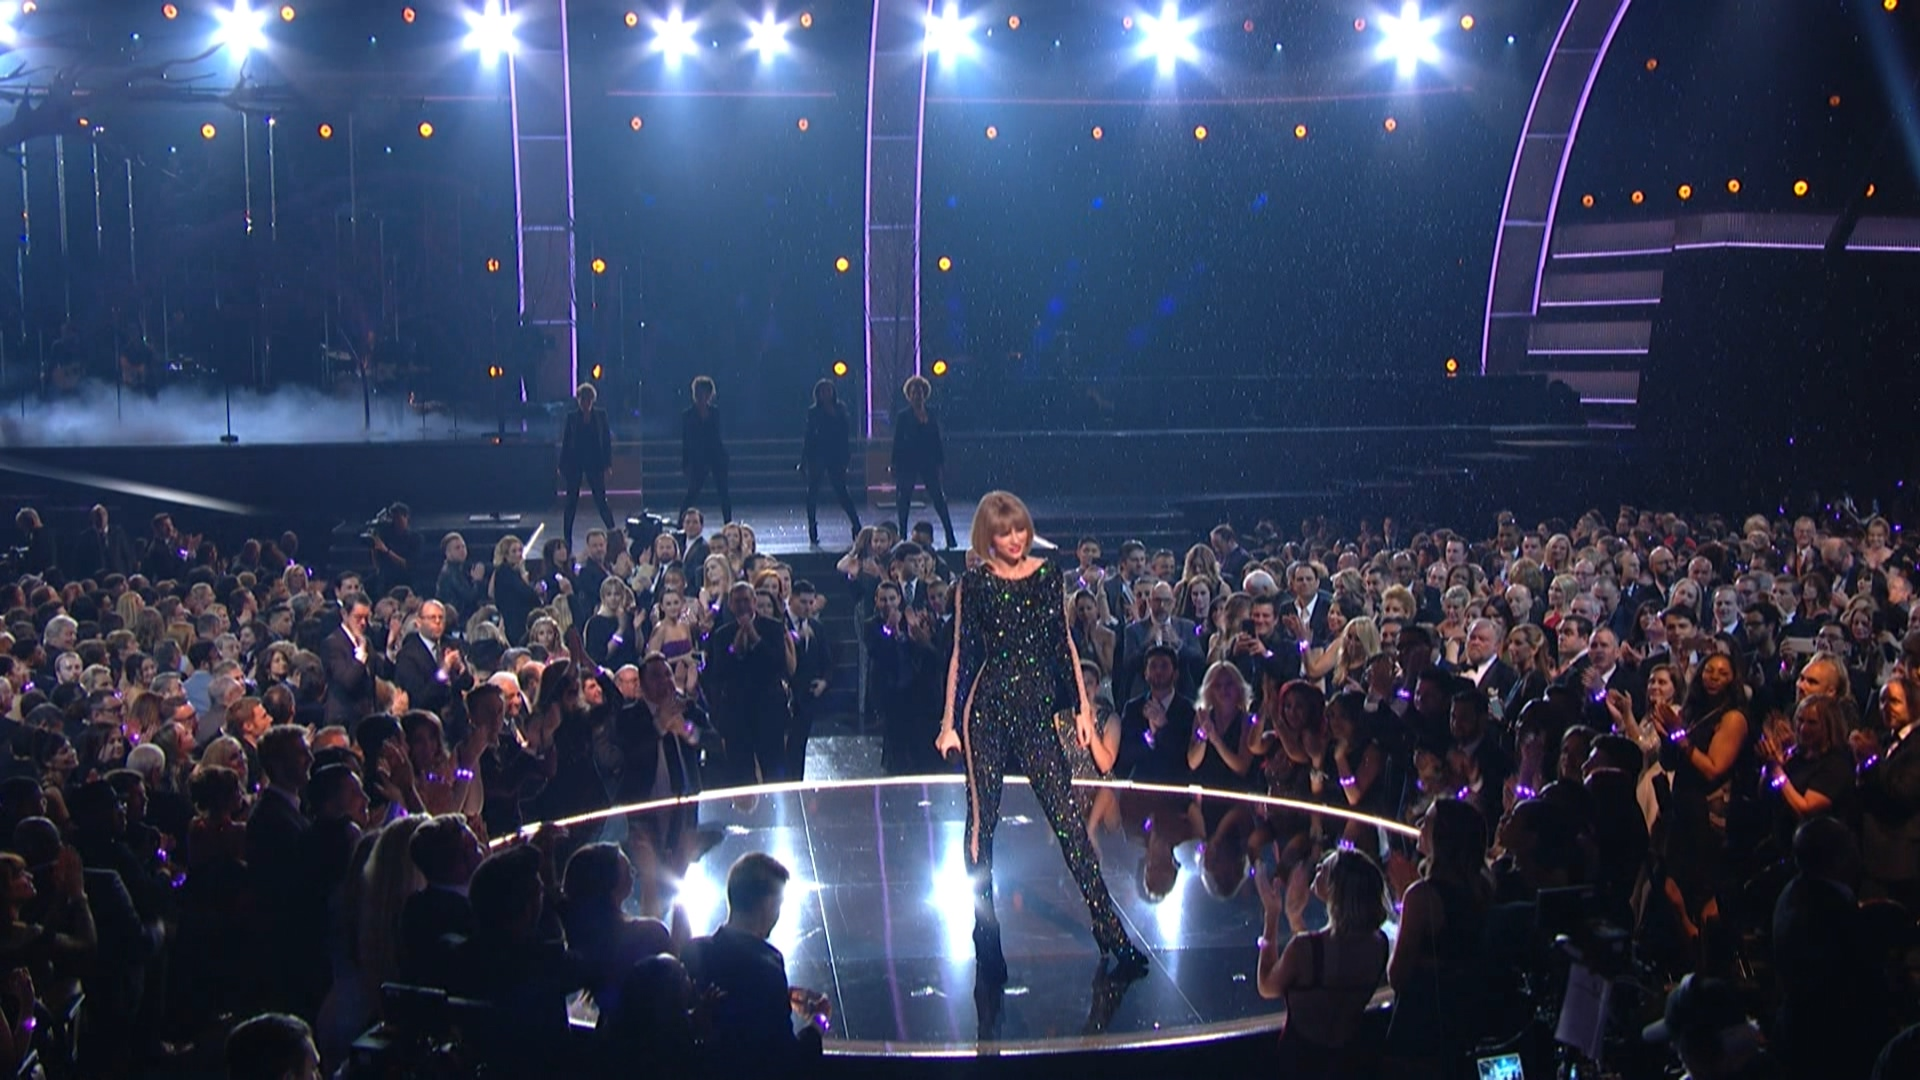 Taylor Swift - Out of the Woods  (Grammy Awards,feb. 15,2016).ts_20160303_081247.250.jpg